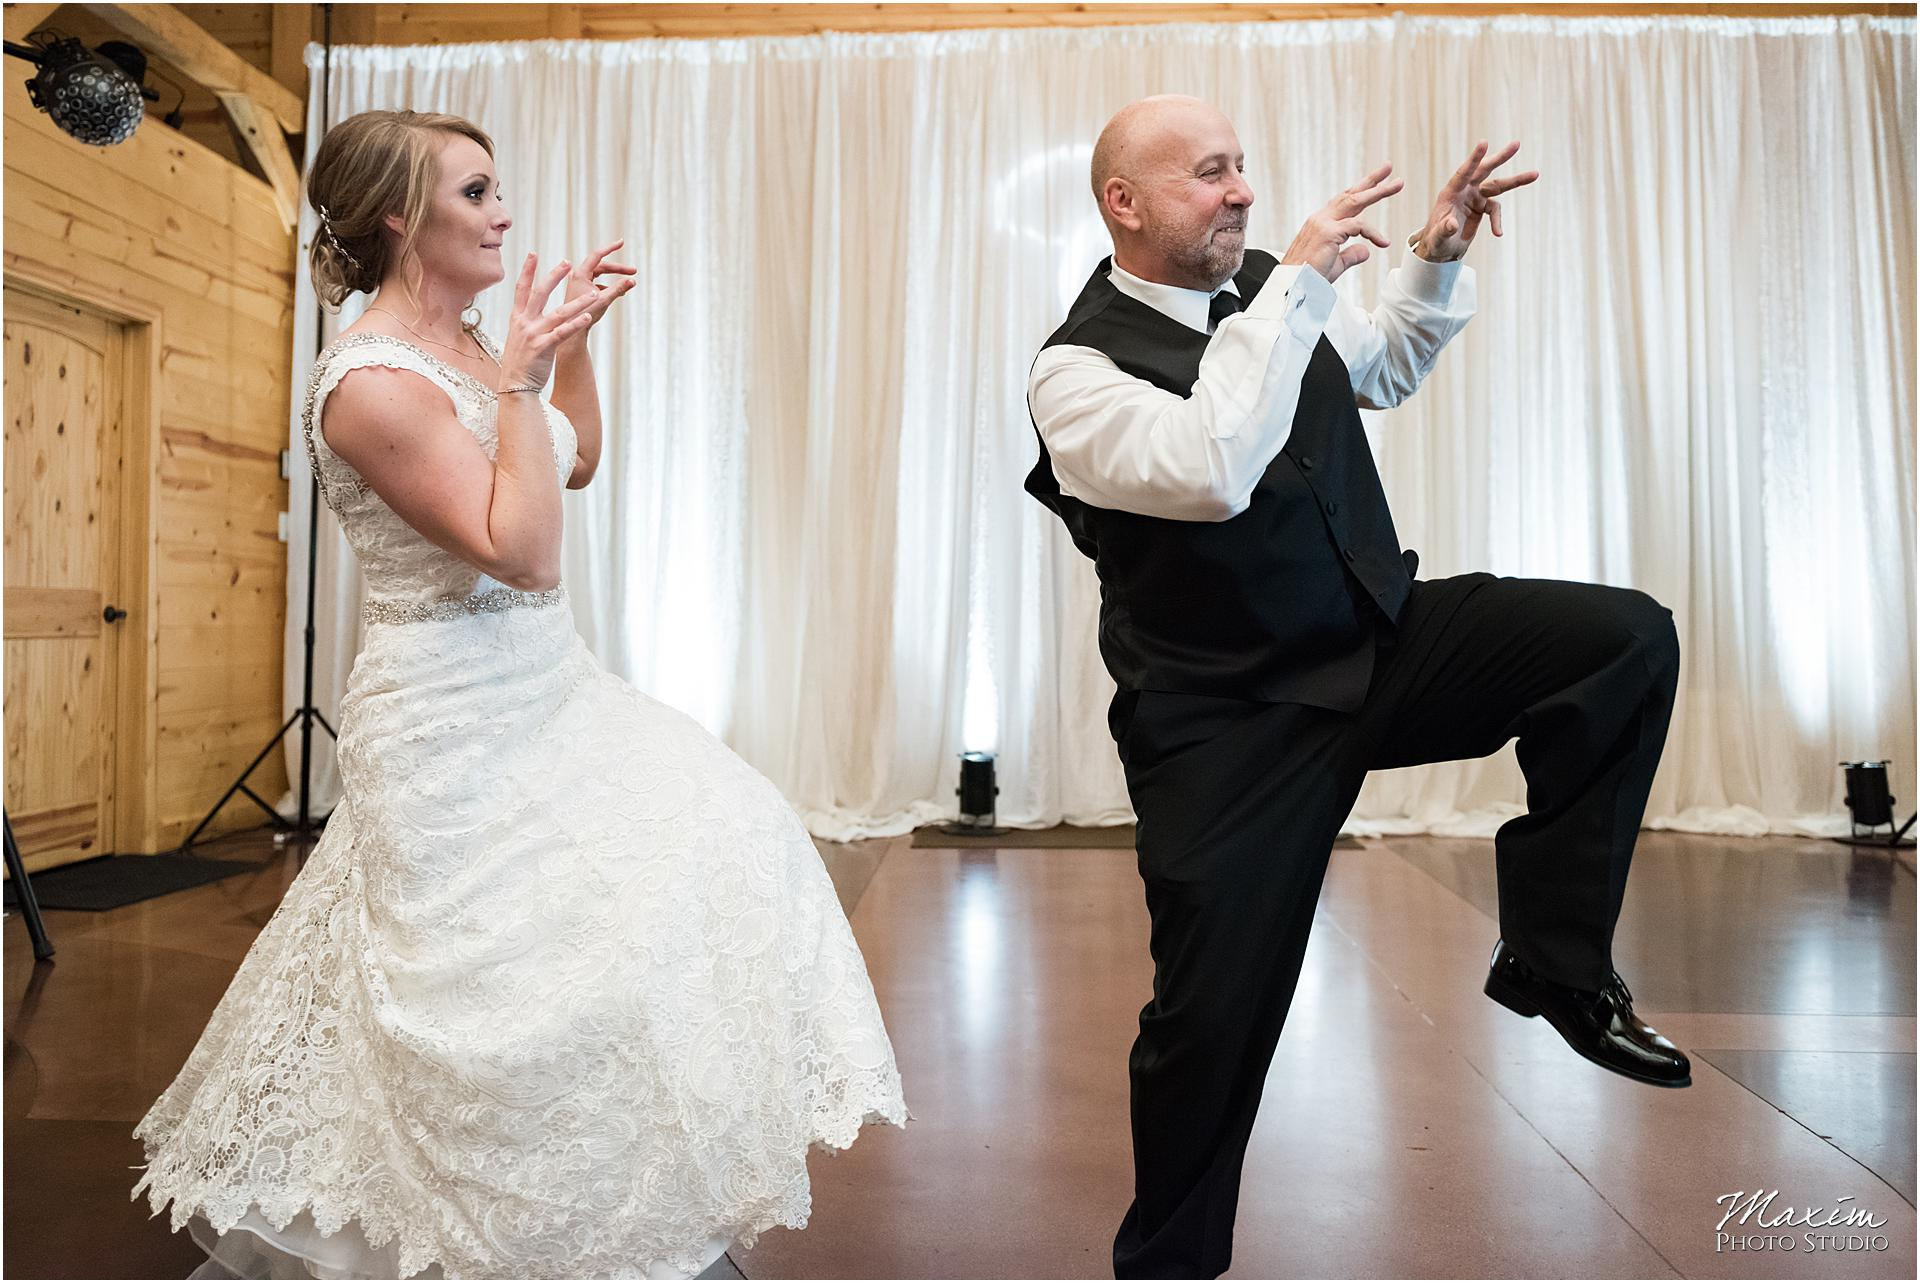 Canopy Creek Dayton Ohio Wedding Reception Thriller Dance